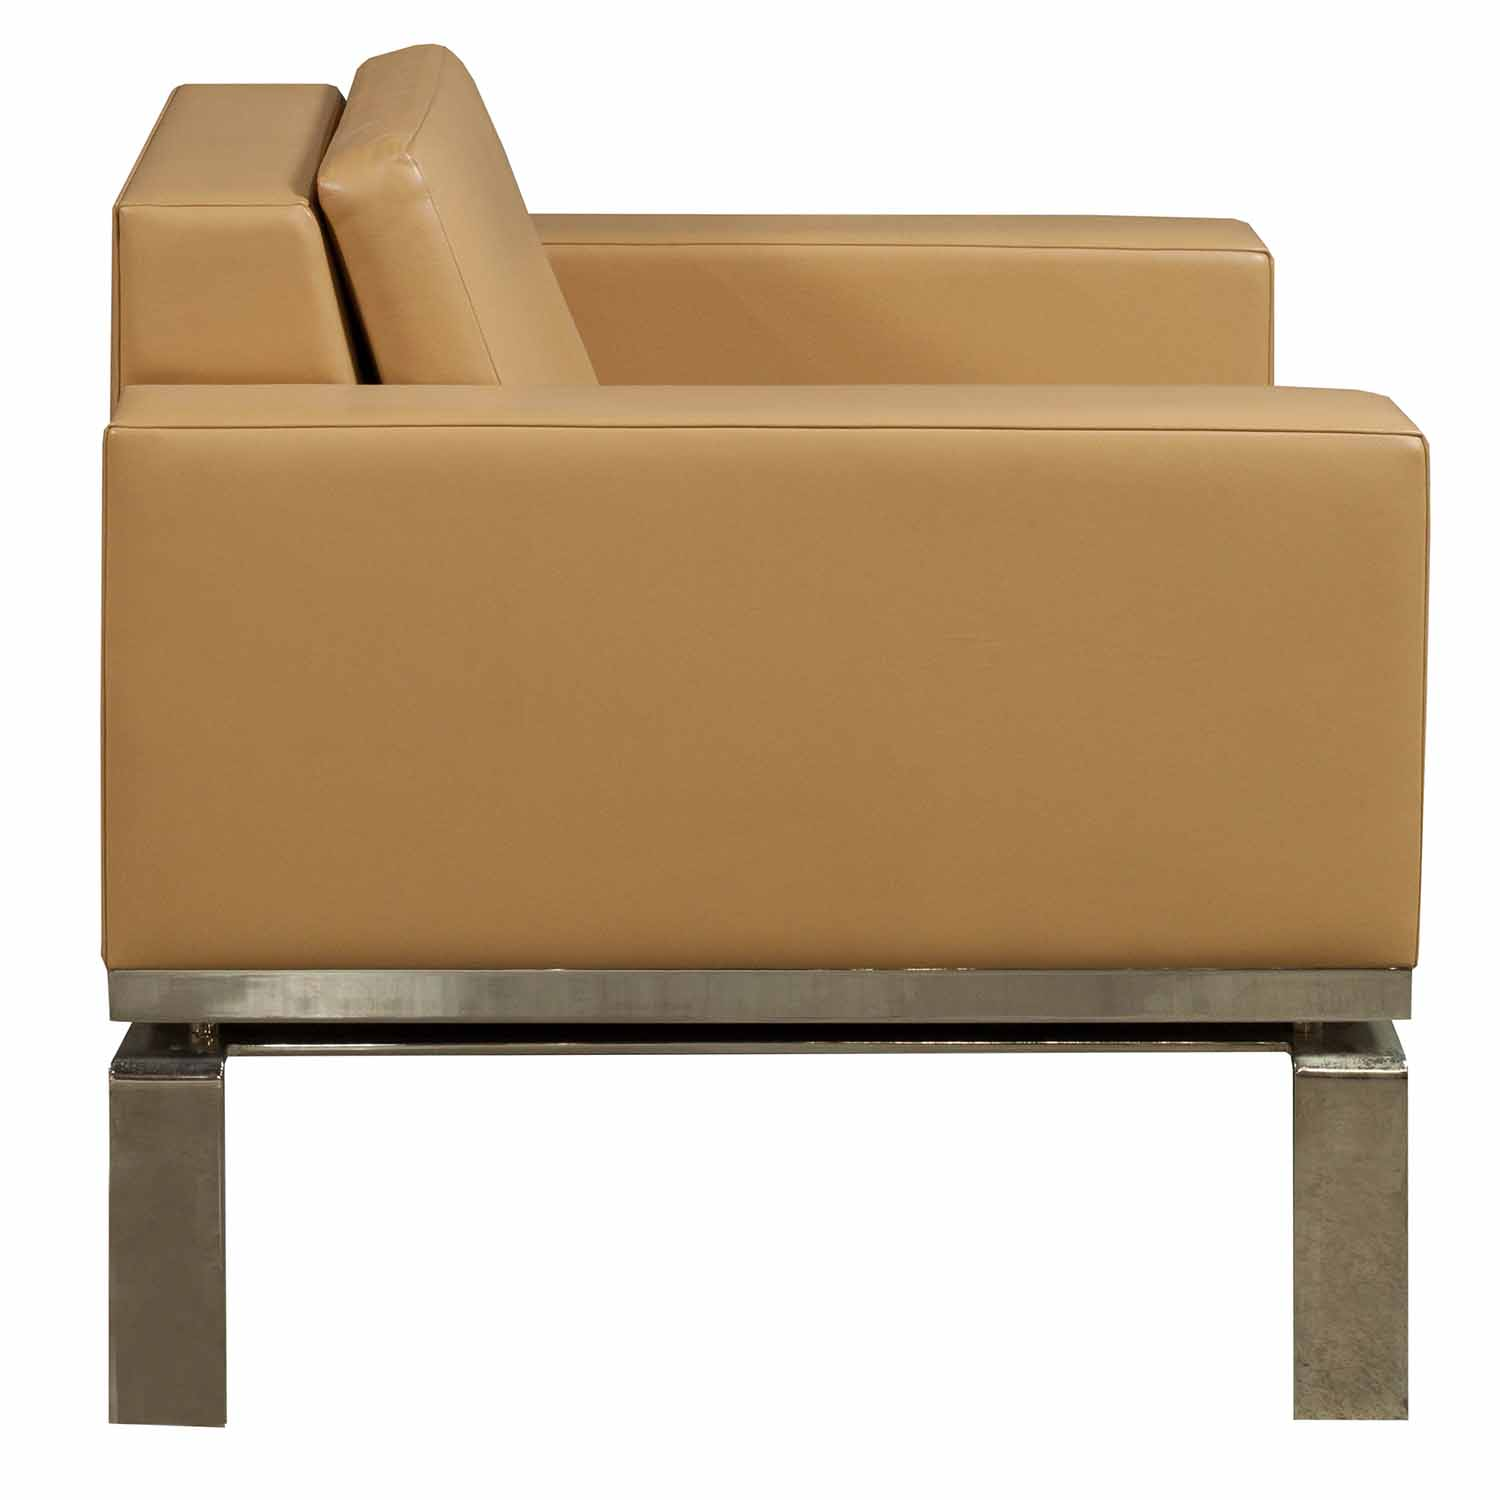 Bernhardt One Series Used Leather Reception Chair Tan